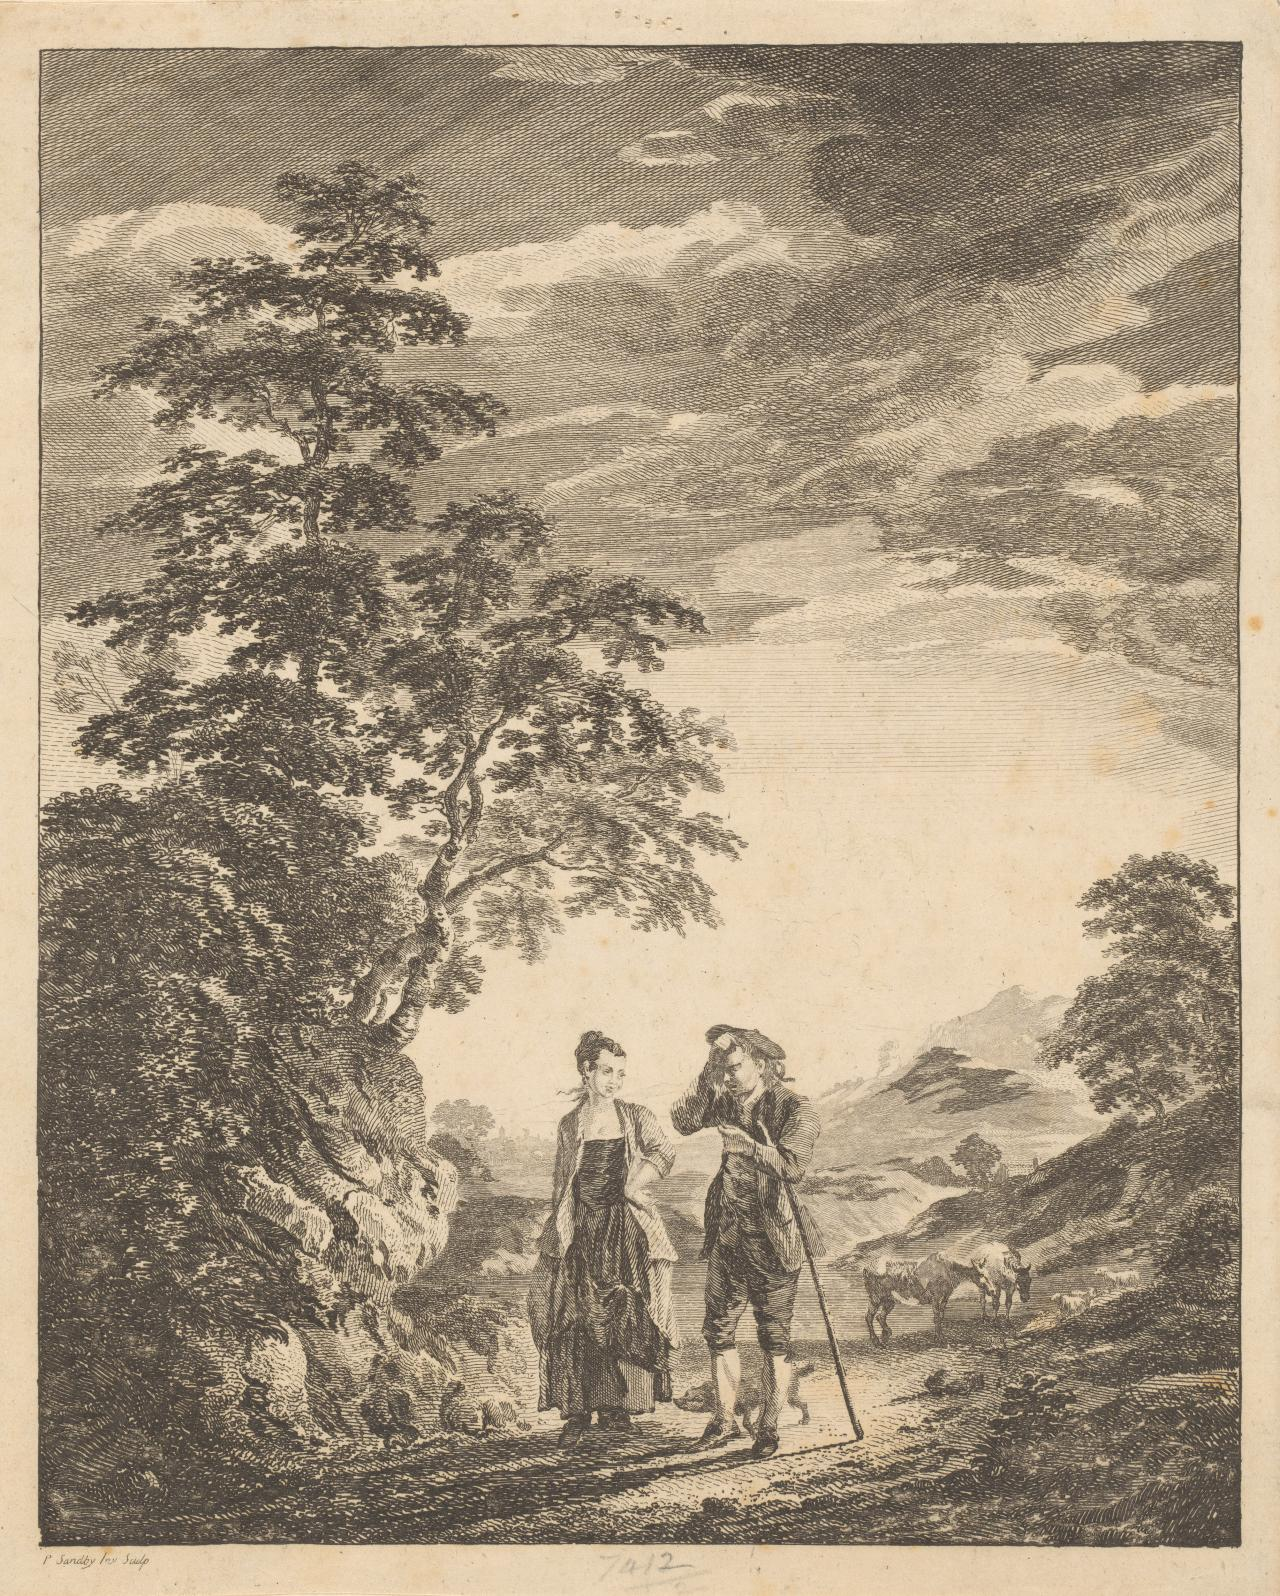 A goatherd and a woman in a rural landscape